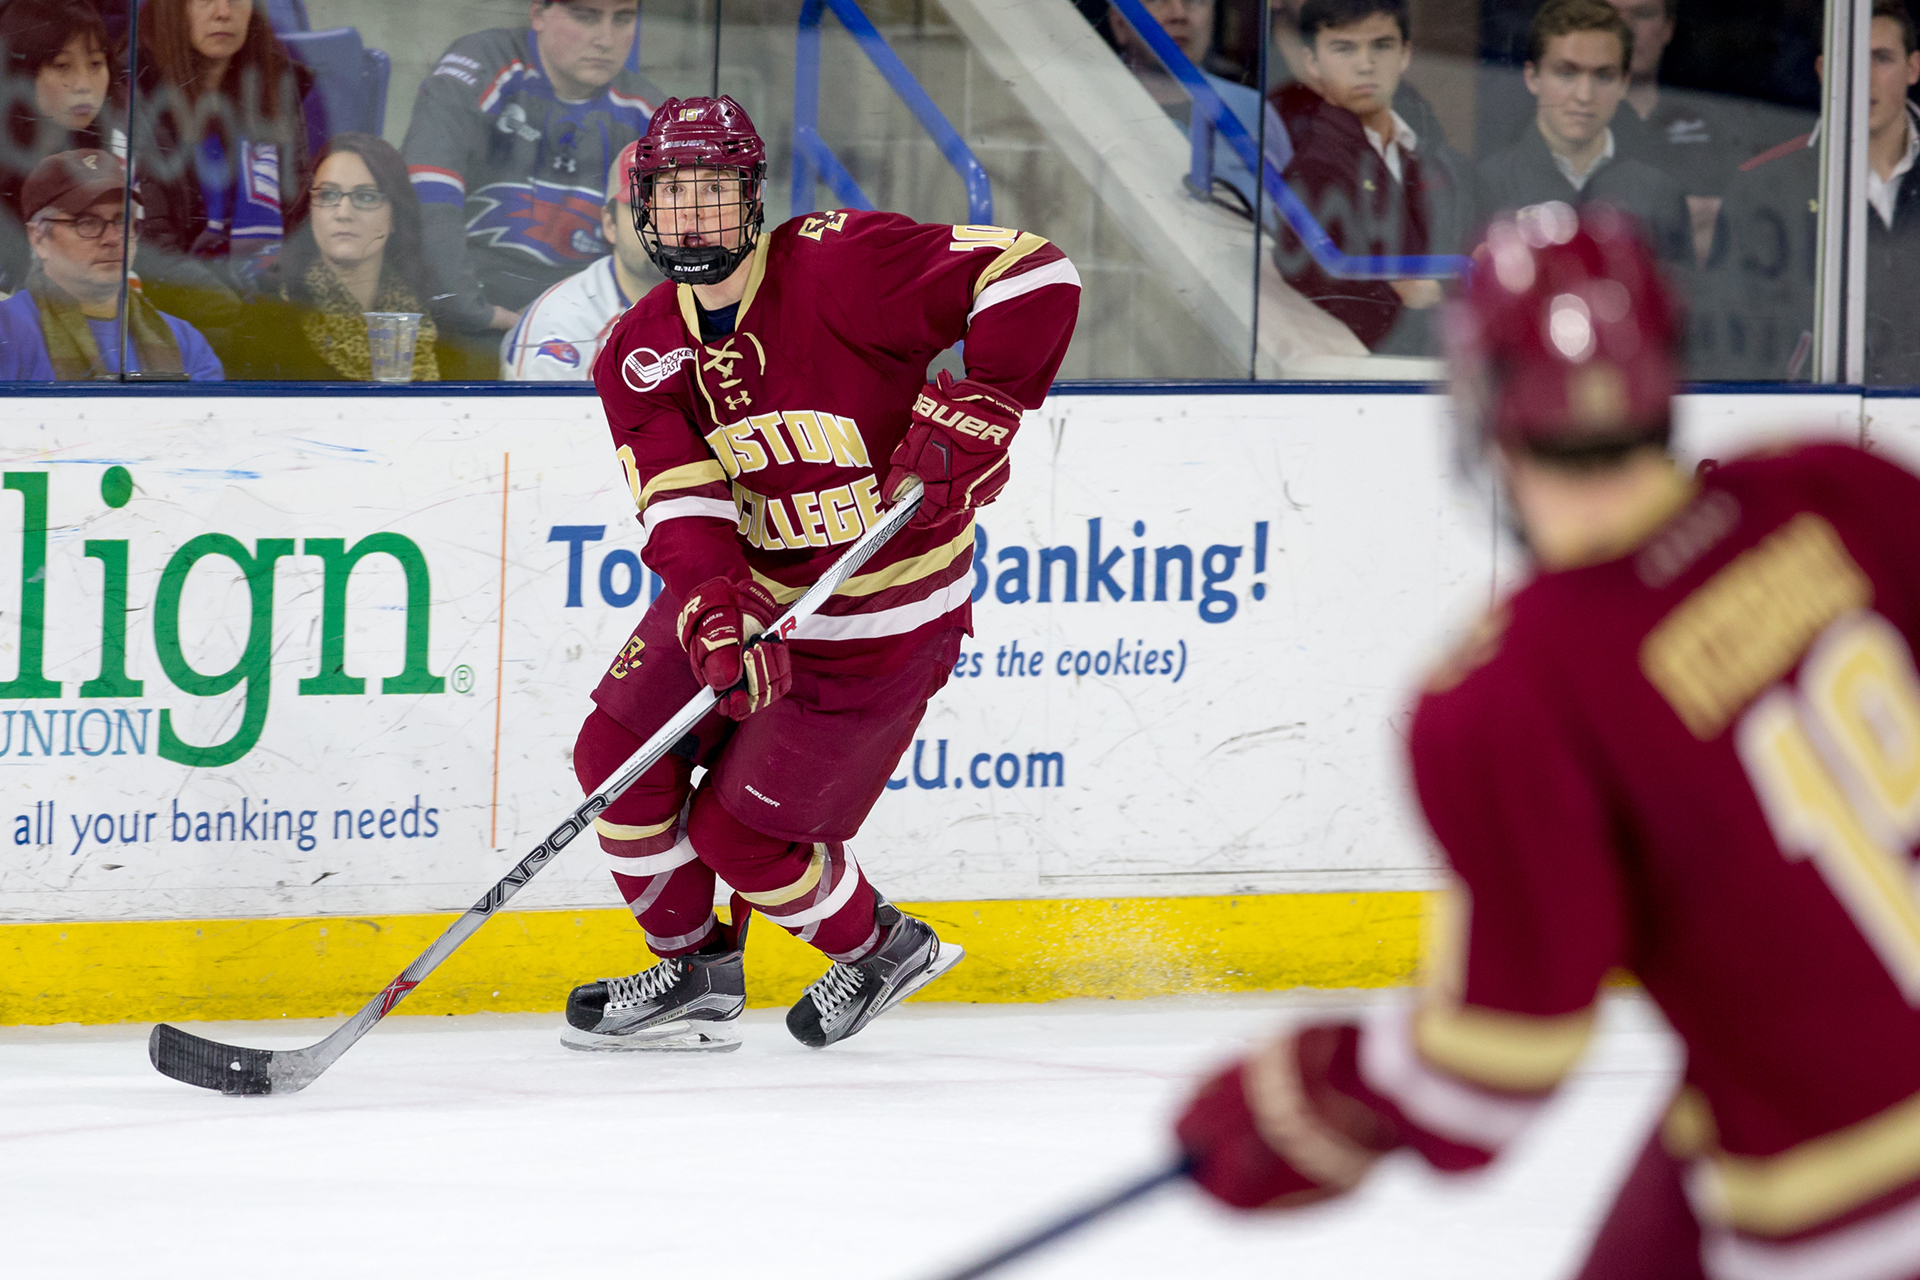 LOWELL, MA - FEBRUARY 27: Casey Fitzgerald #5 of the Boston College Eagles skates against the Massachusetts Lowell River Hawks during NCAA hockey at the Tsongas Center on February 27, 2016 in Lowell, Massachusetts. The River Hawks won 3-1. (Photo by Richard T Gagnon/Getty Images)